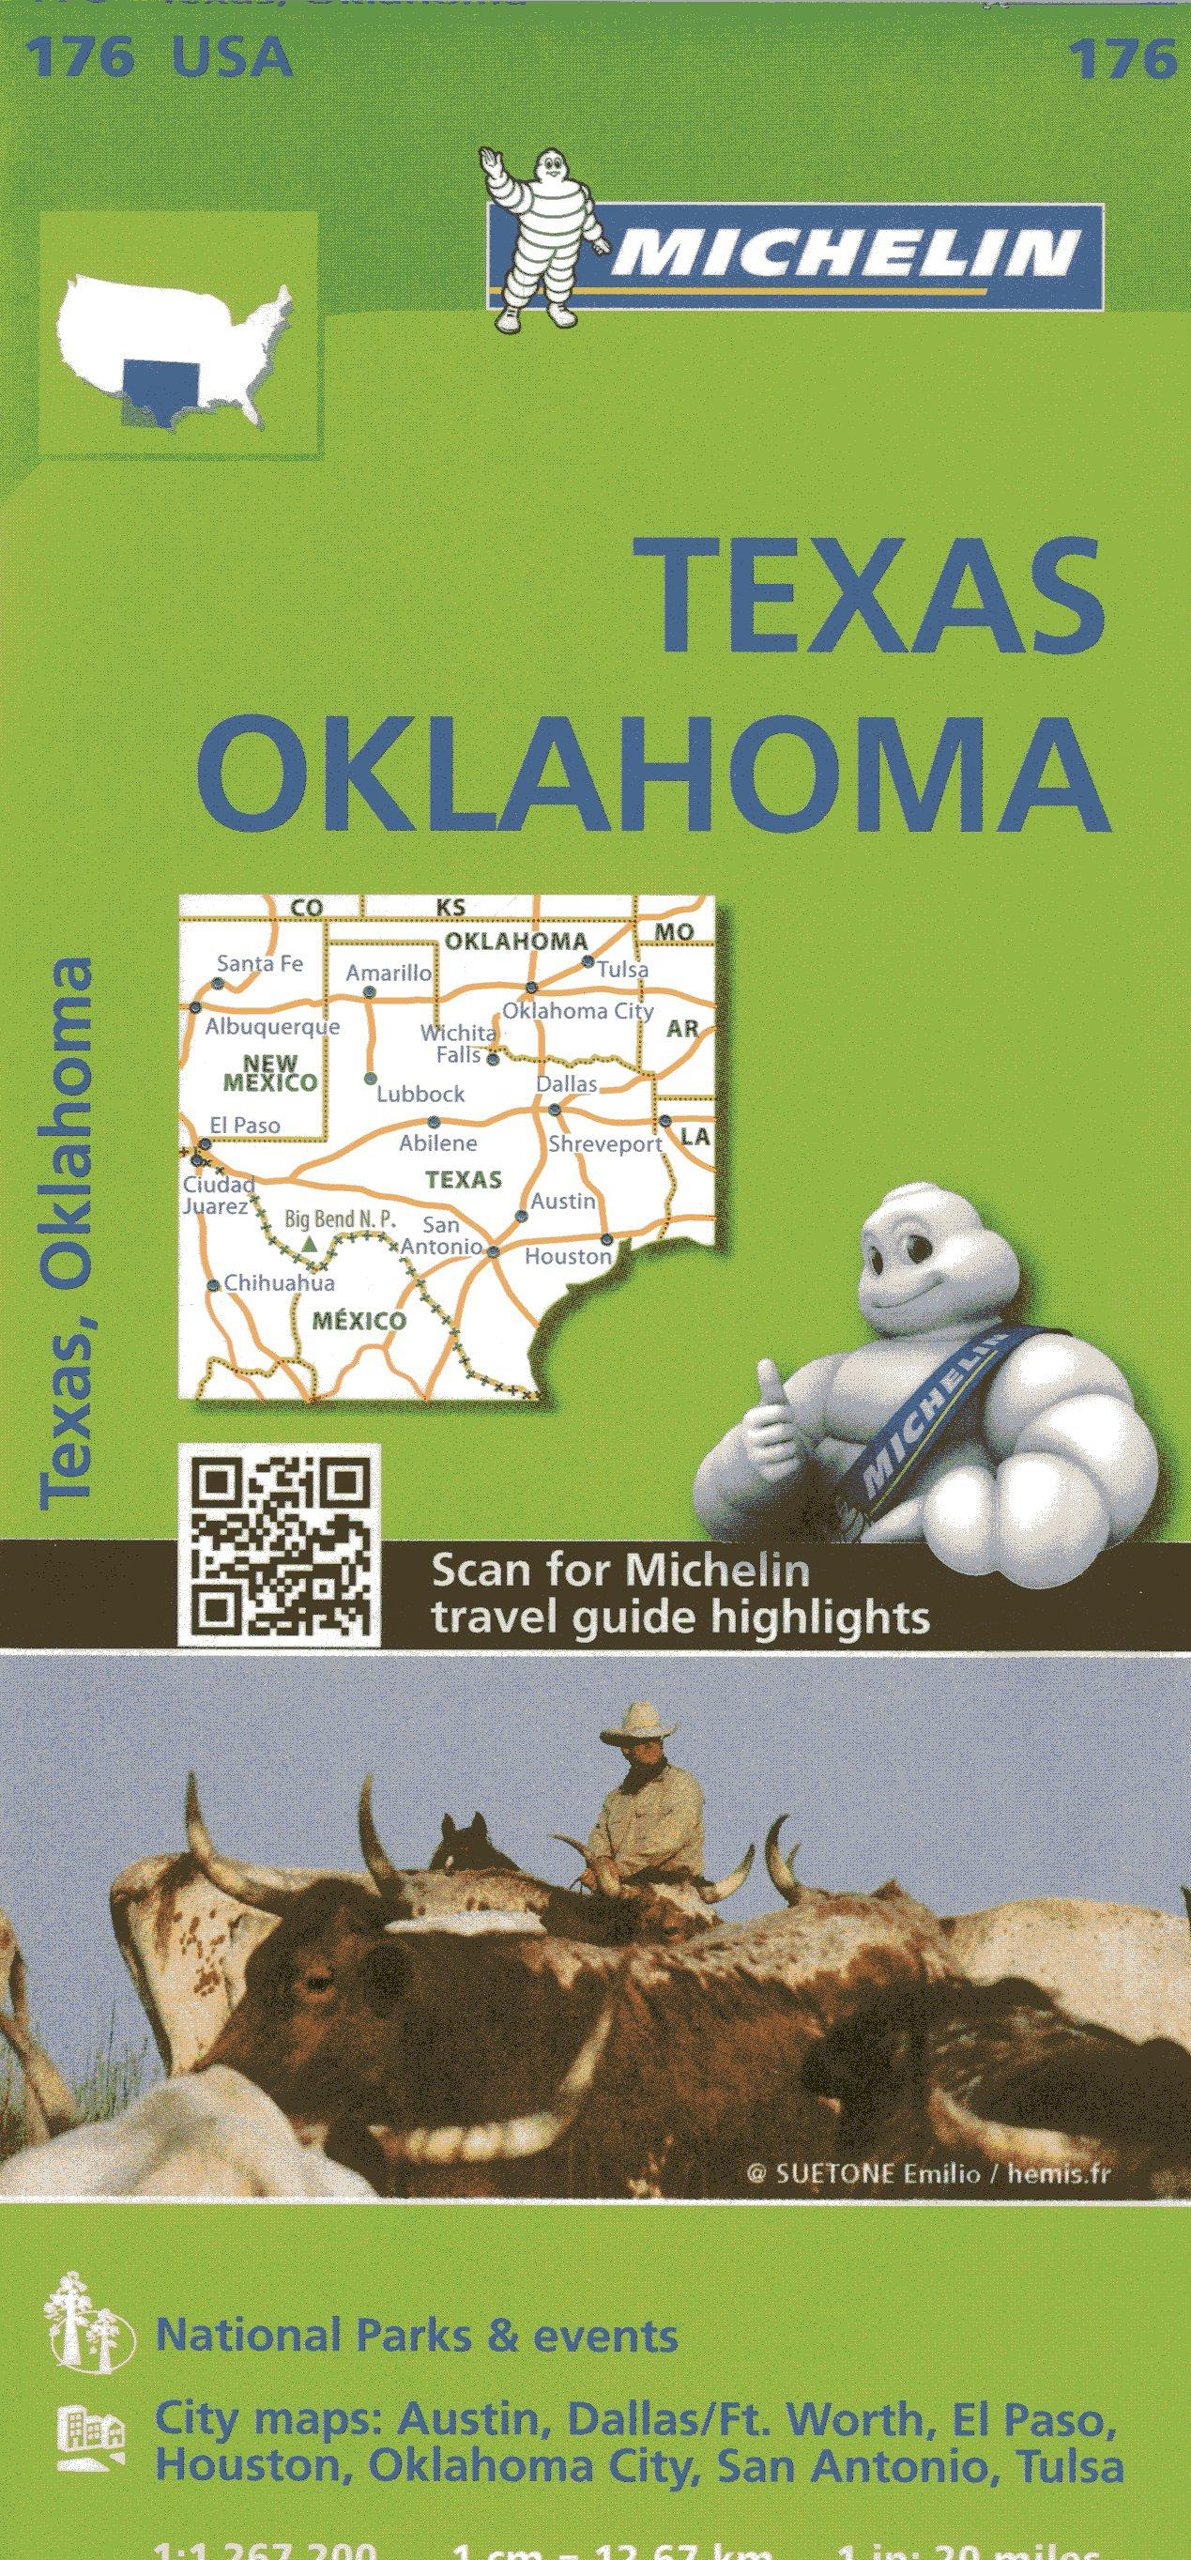 Michelin USA Texas, Oklahoma Map 176 (Michelin Zoom USA Maps ... on map ltd, map measure tool, map snap, map reporter, map widget, map land of the lost, map scaling, map icon library, map of spain la liga teams, map select, map slide, map of europe with names, map watermark, map measure distance, map shelby, map hancock, map layers, map screensaver, map information,